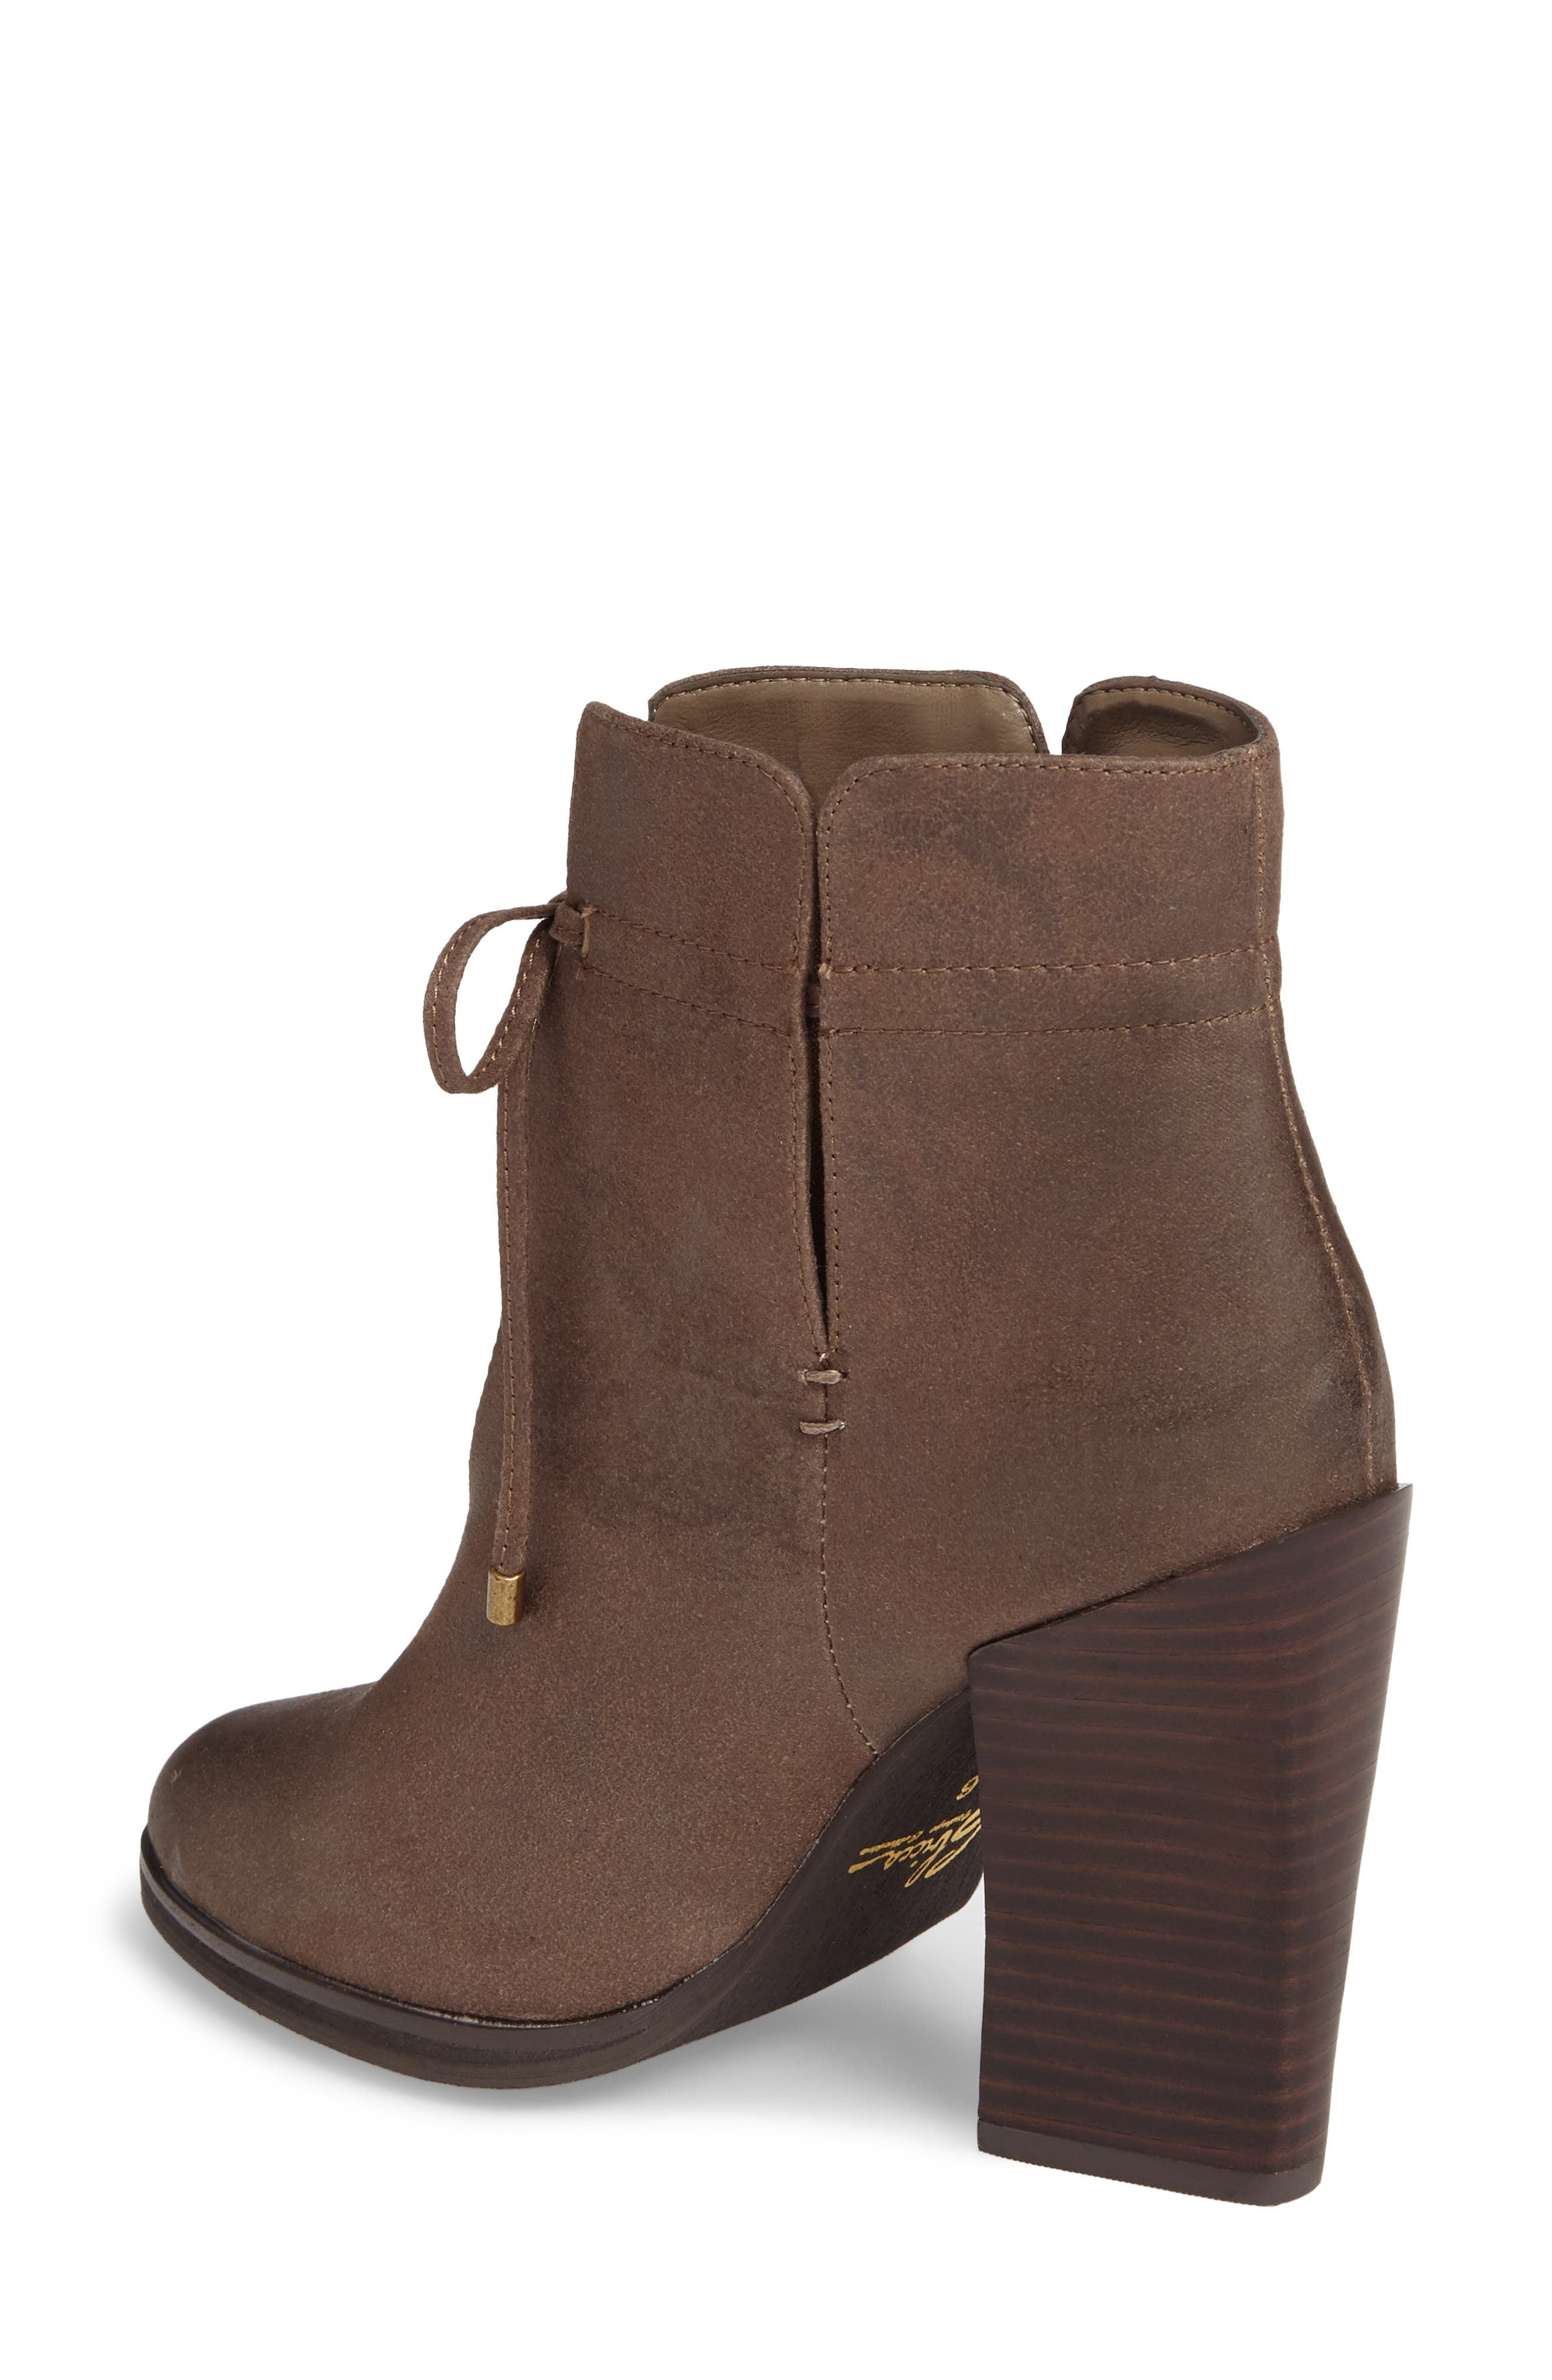 Chick Flick Bootie,                             Alternate thumbnail 5, color,